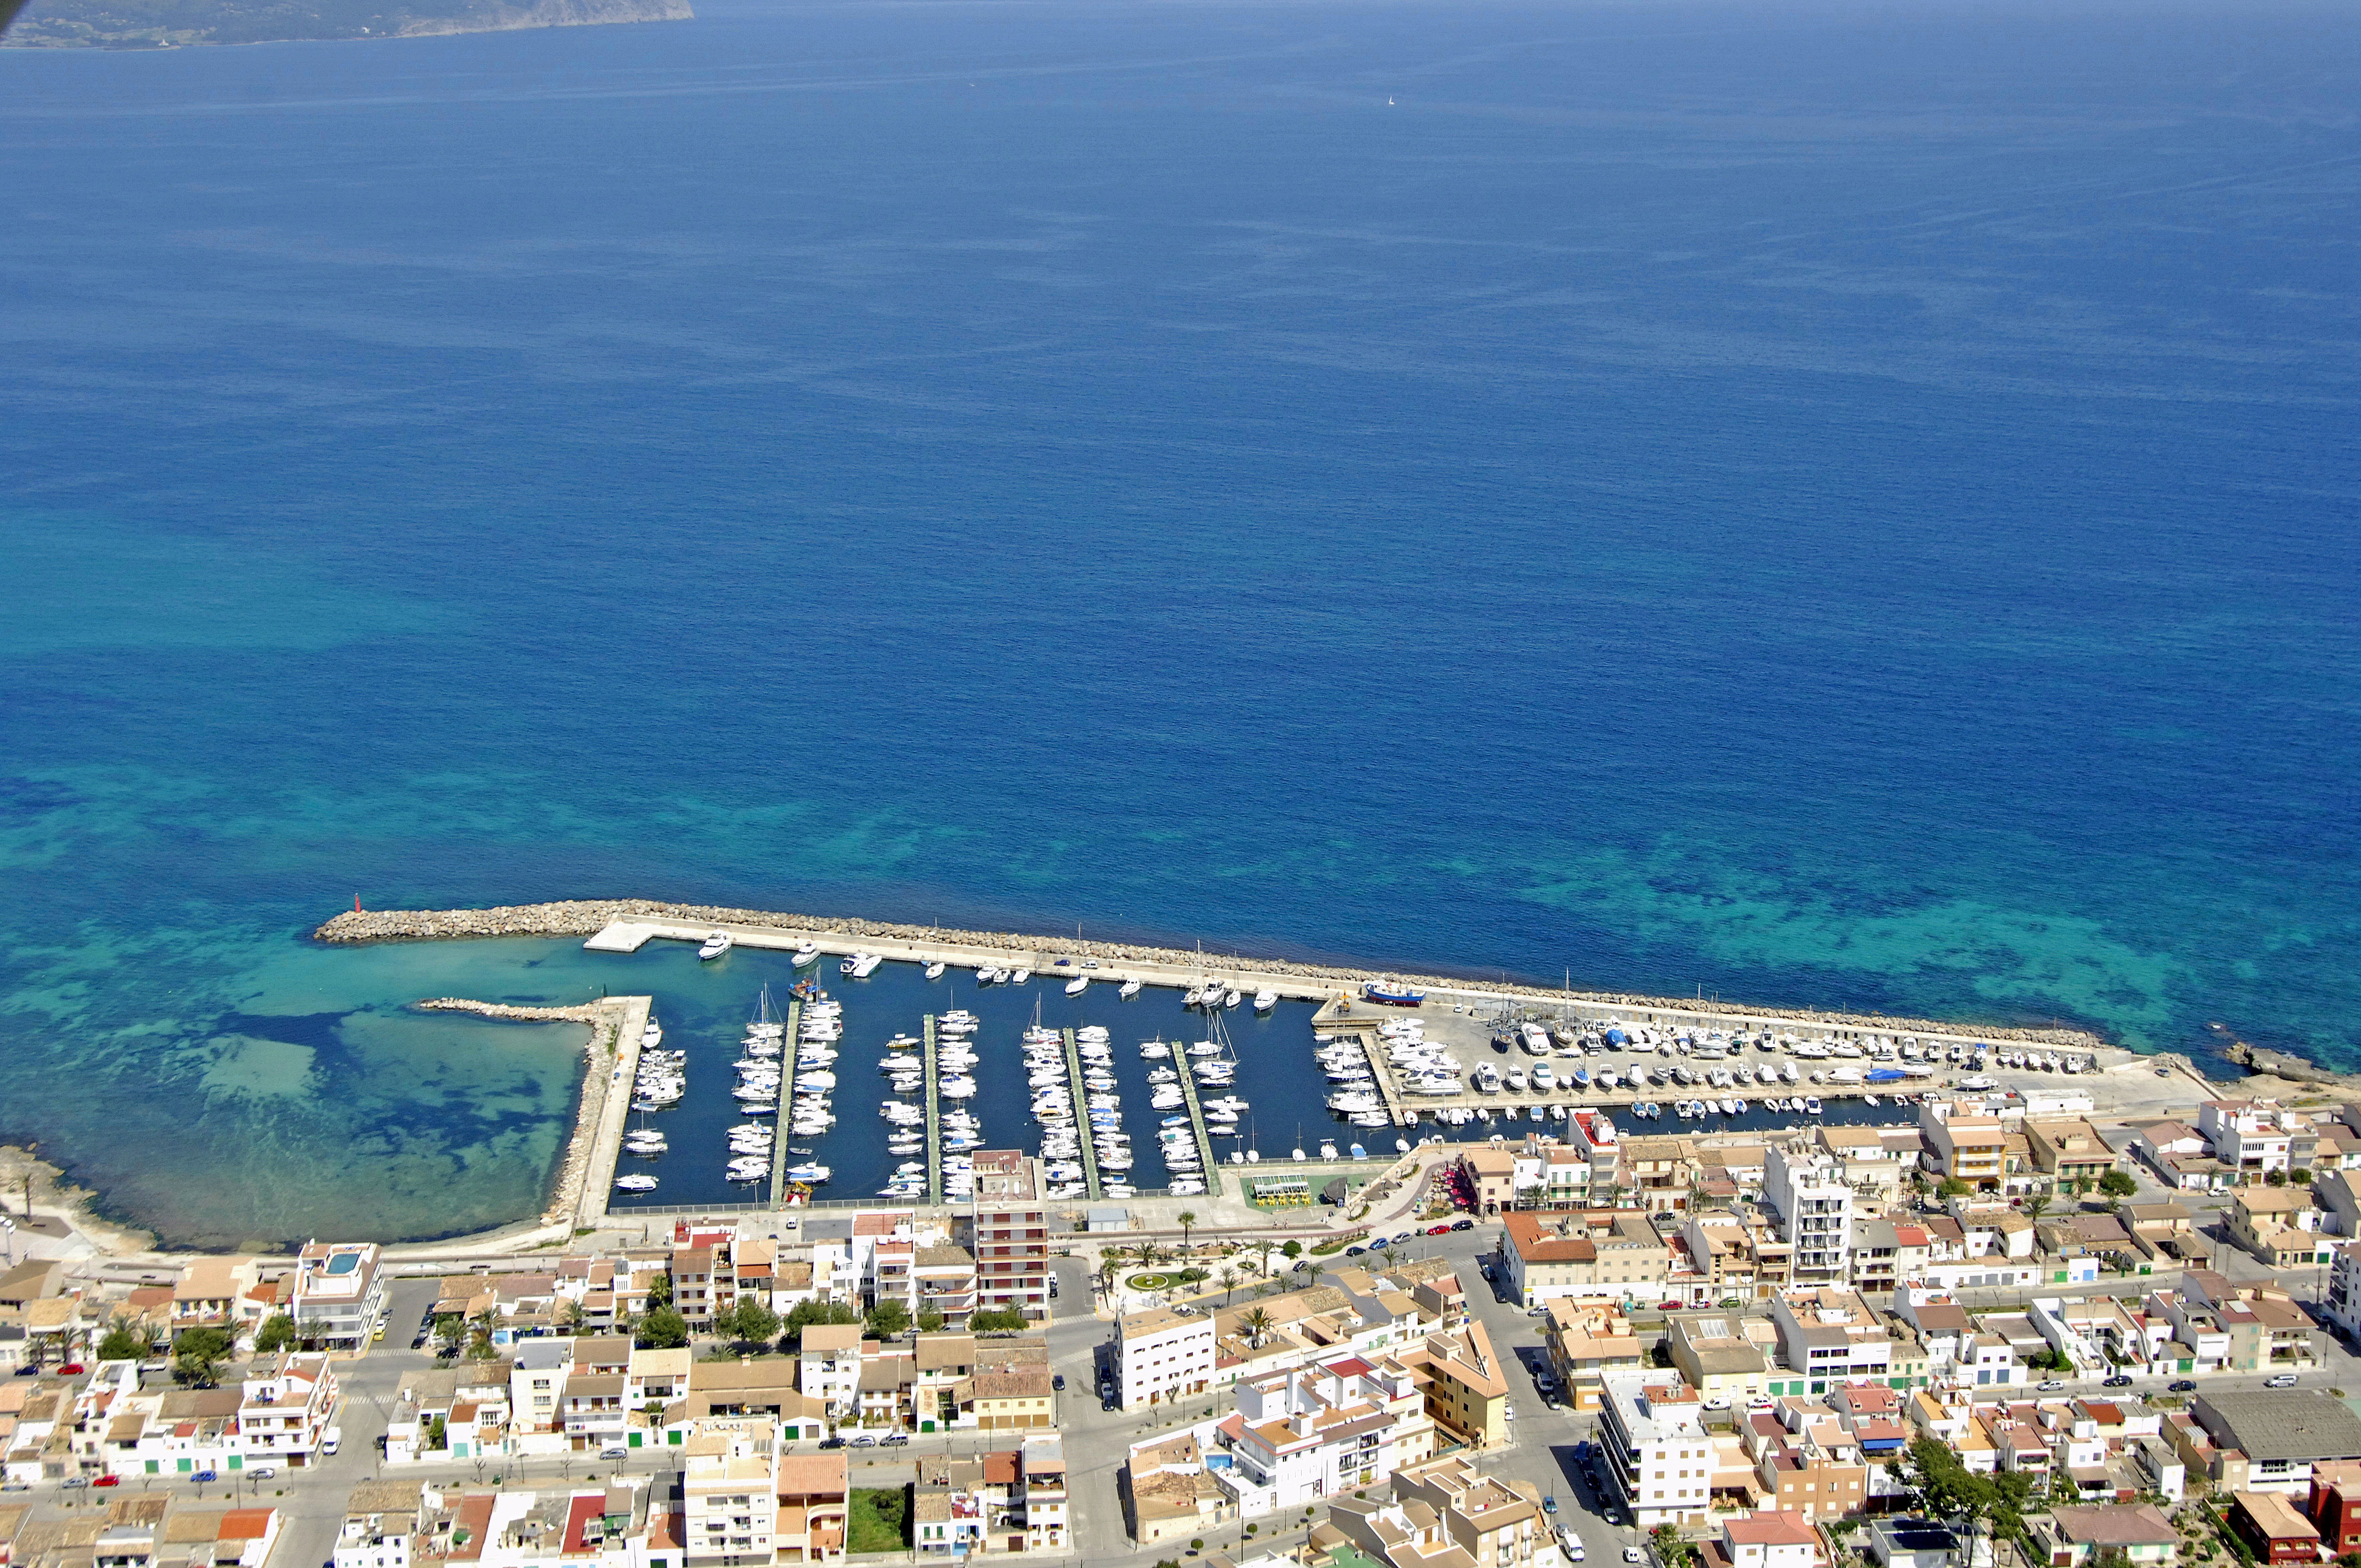 Puerto de can picafort marina in can picafort ballearic islands spain marina reviews phone - Puerto rico spain weather ...